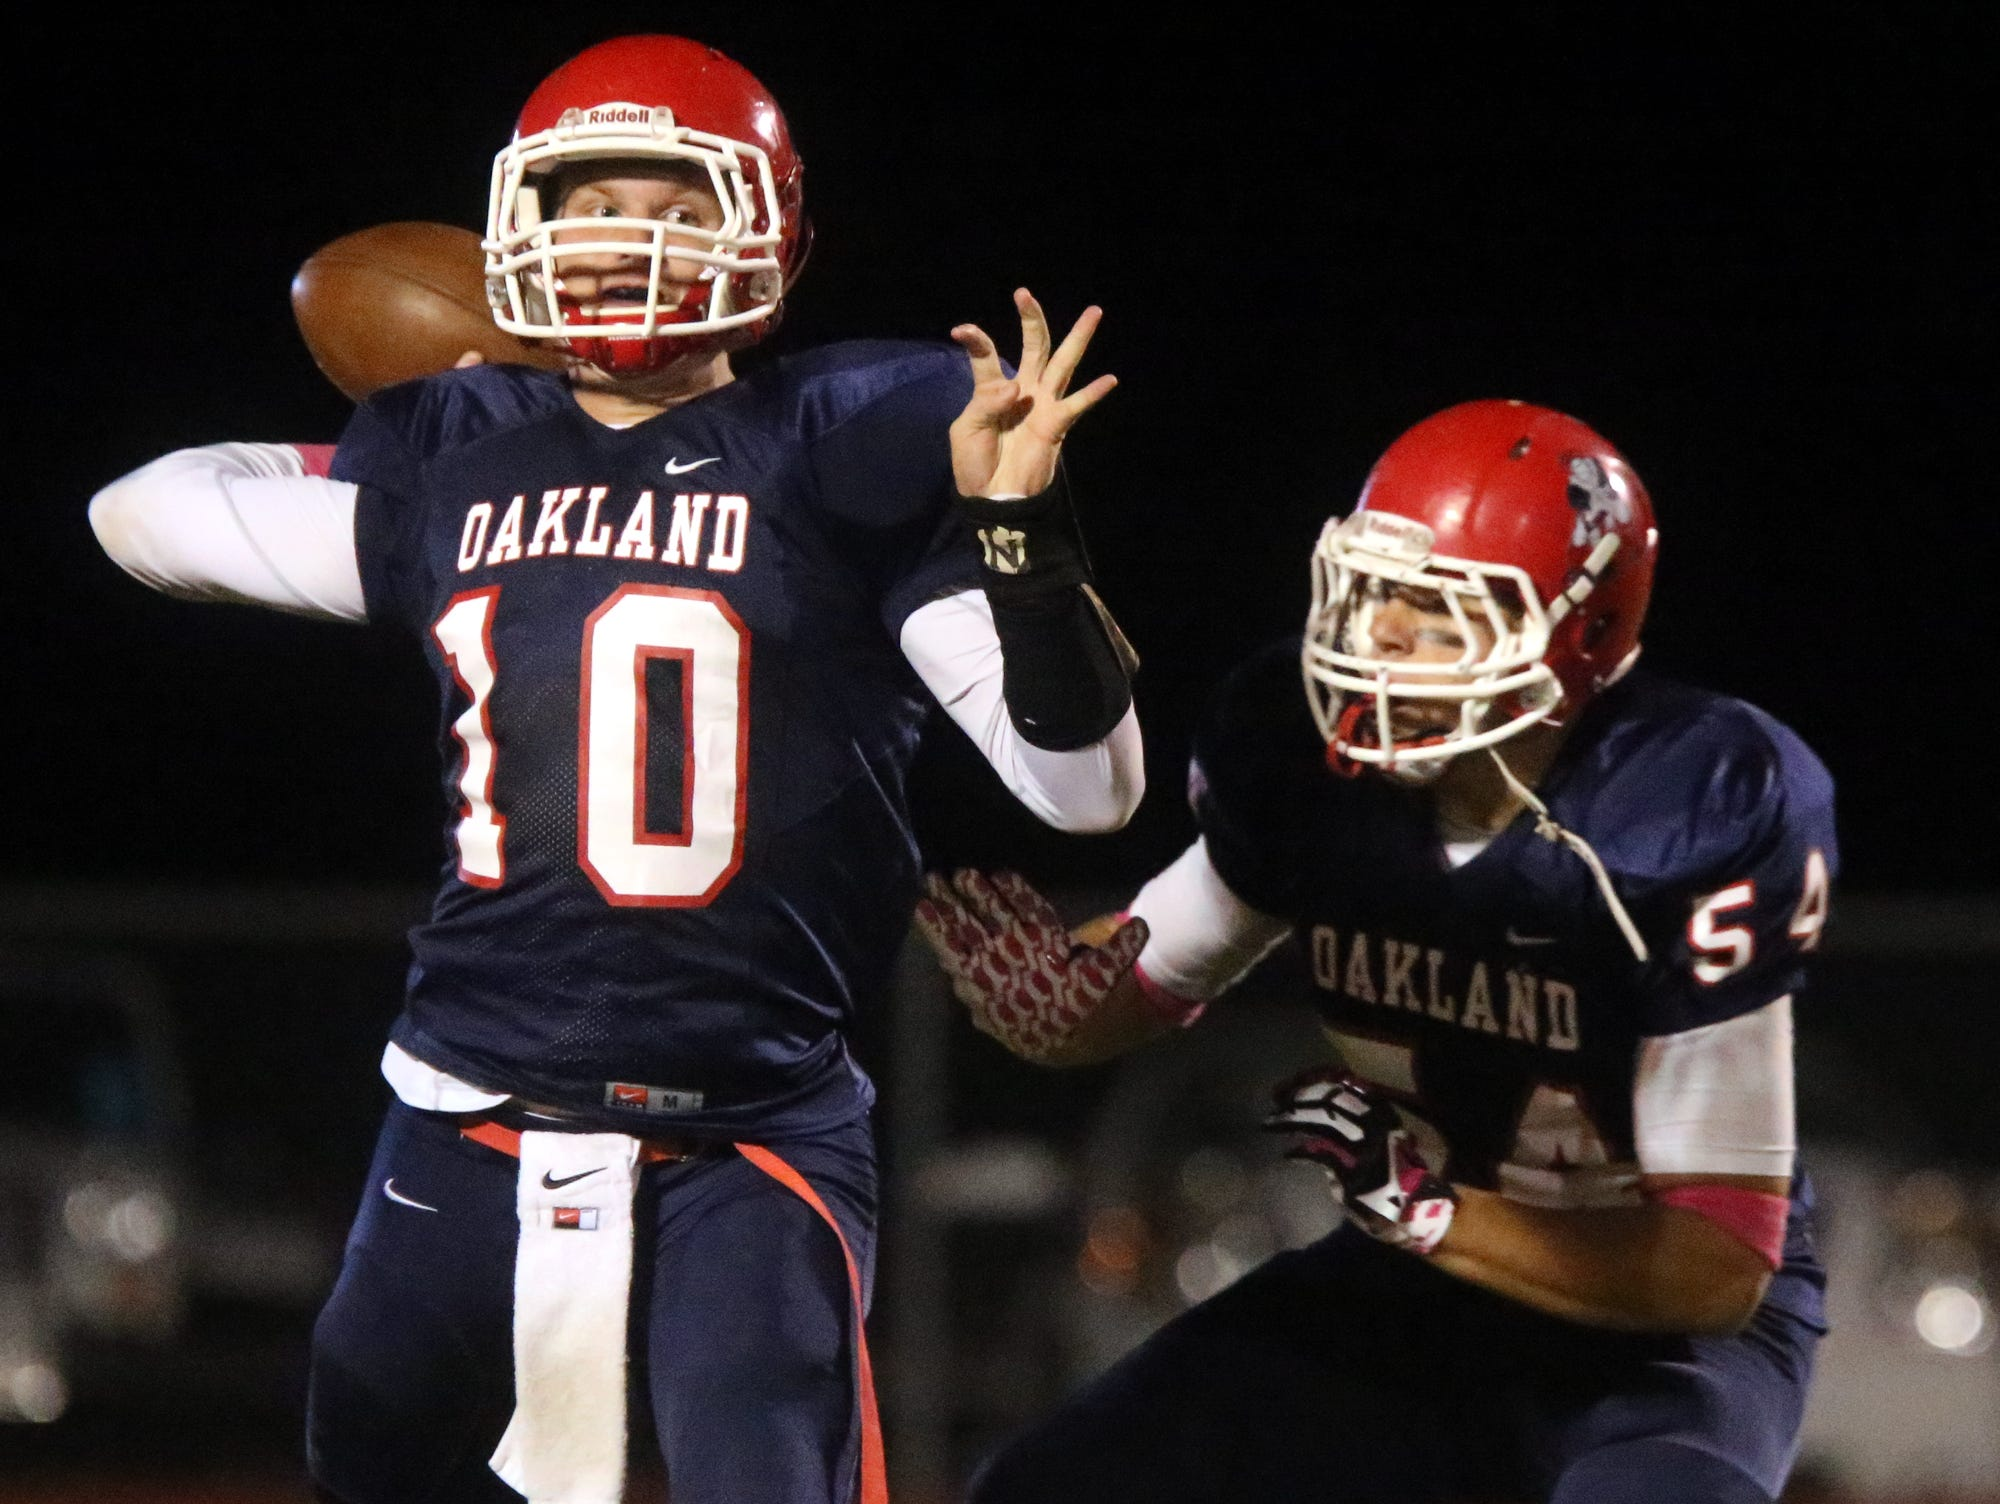 Oakland's quarterback Brendan Matthews (10) drops back to pass the ball as his teammate Jacob Frazier (54) guards Matthews during the game against Riverdale at Oakland, on Friday Oct. 16, 2015.